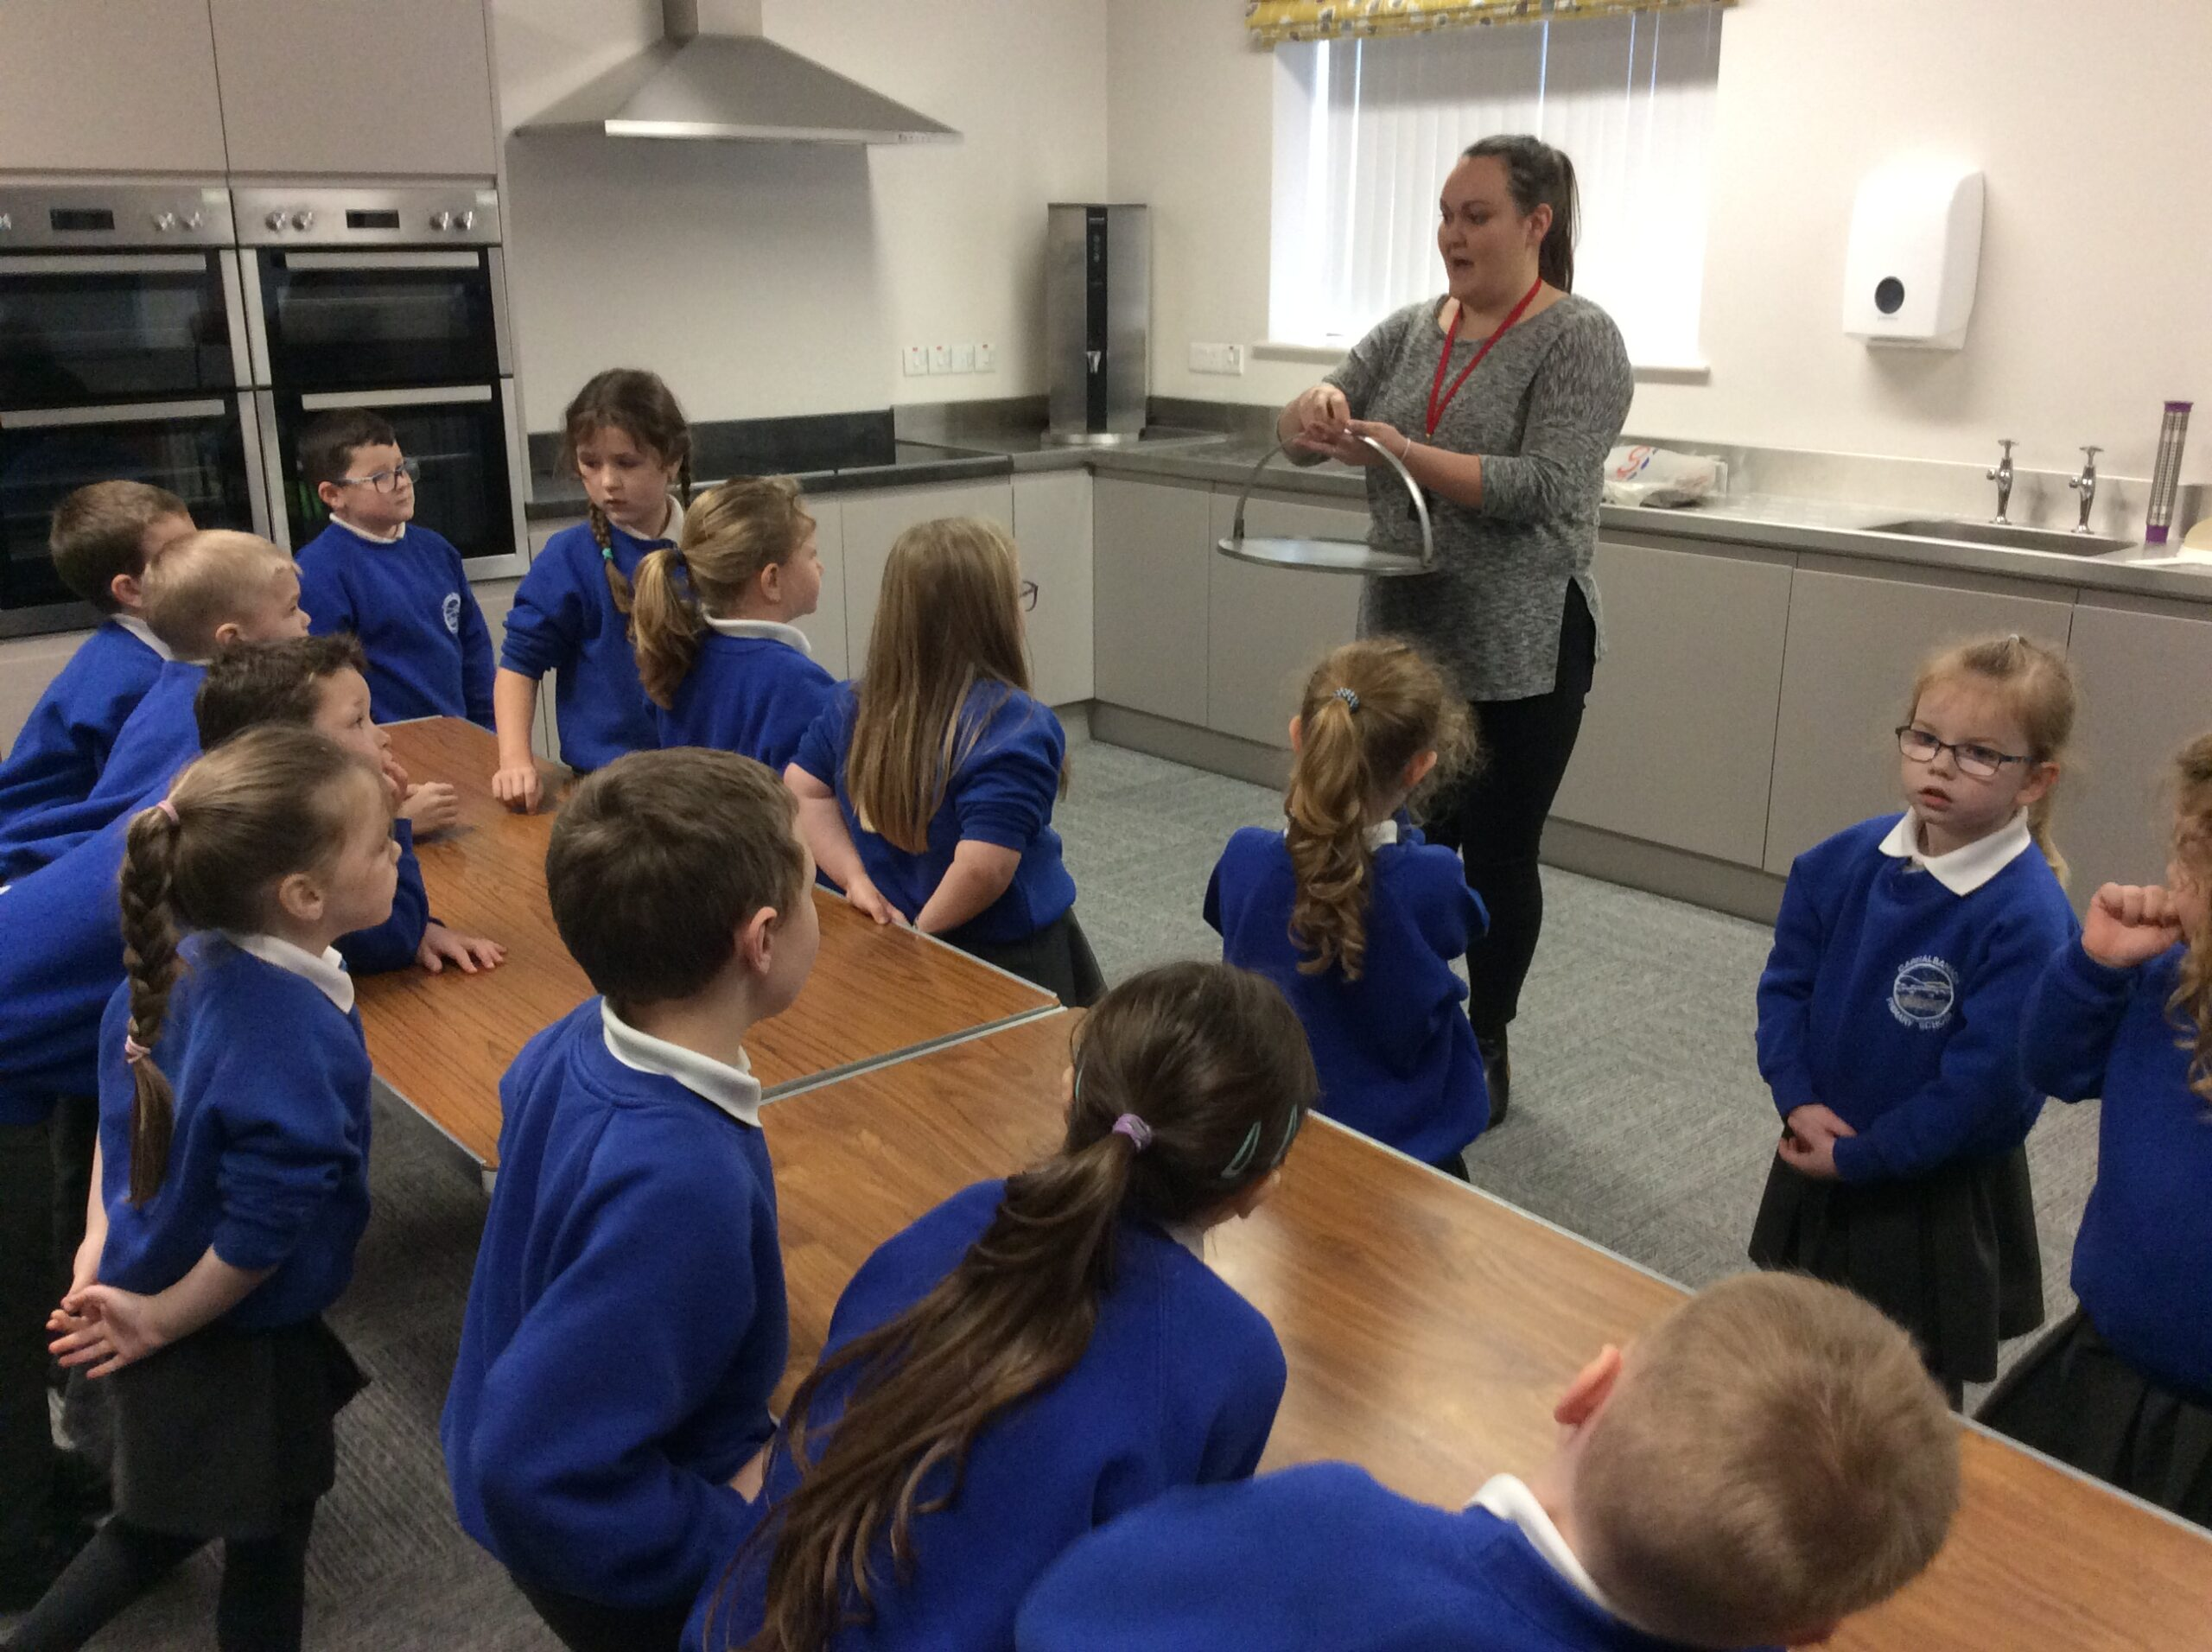 Local schools encouraged to participate in new Museum Education Programme | Newry Times - Newry schools